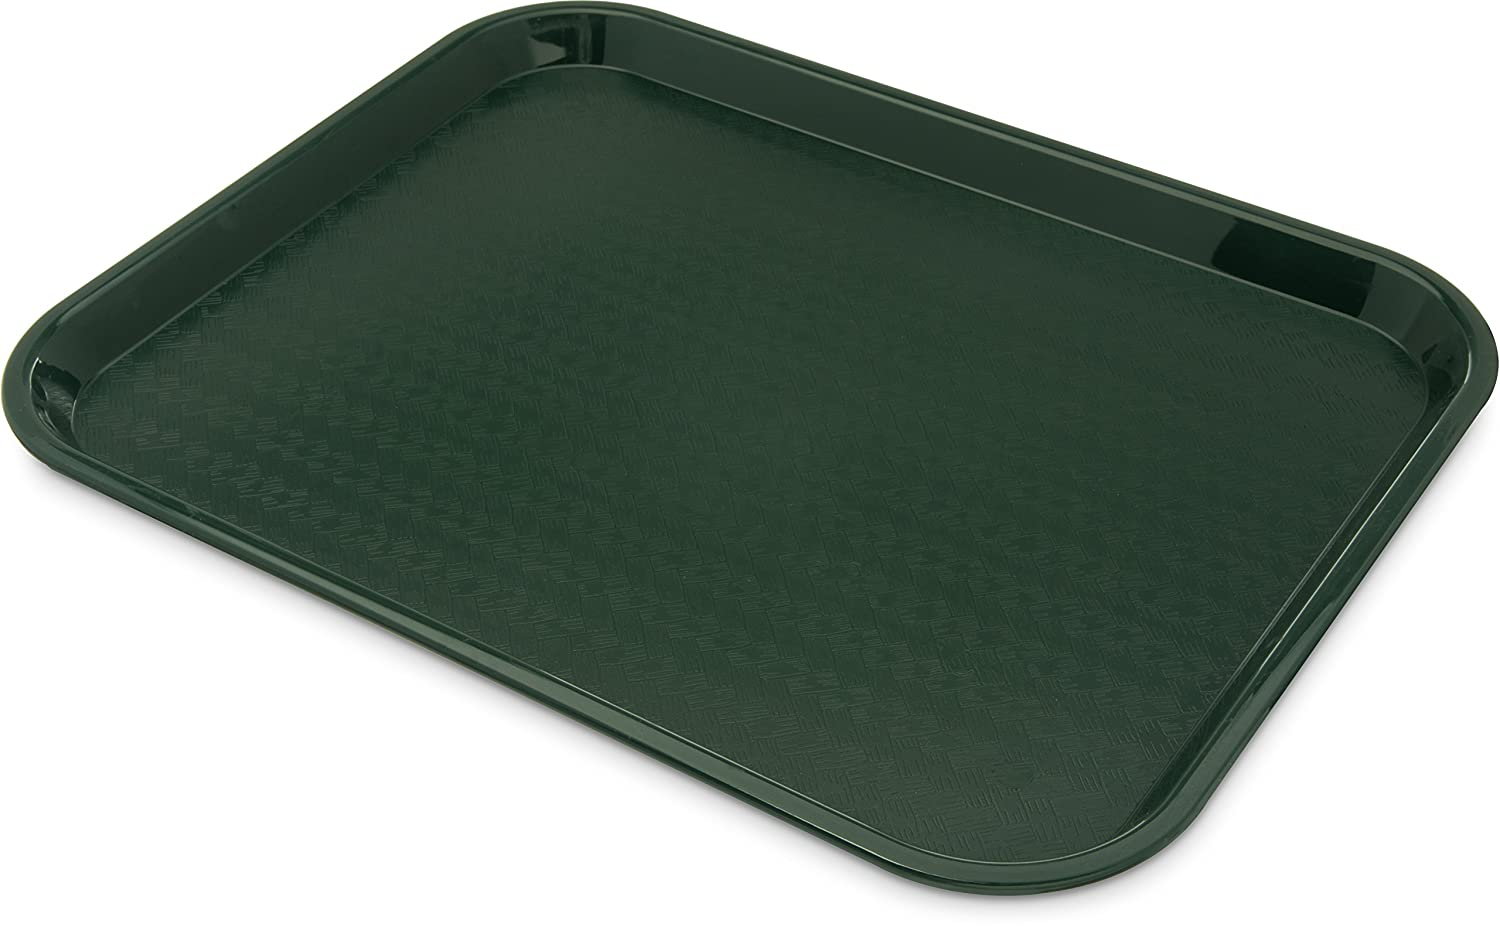 Carlisle CT141808 Café Standard Cafeteria / Fast Food Tray, 14